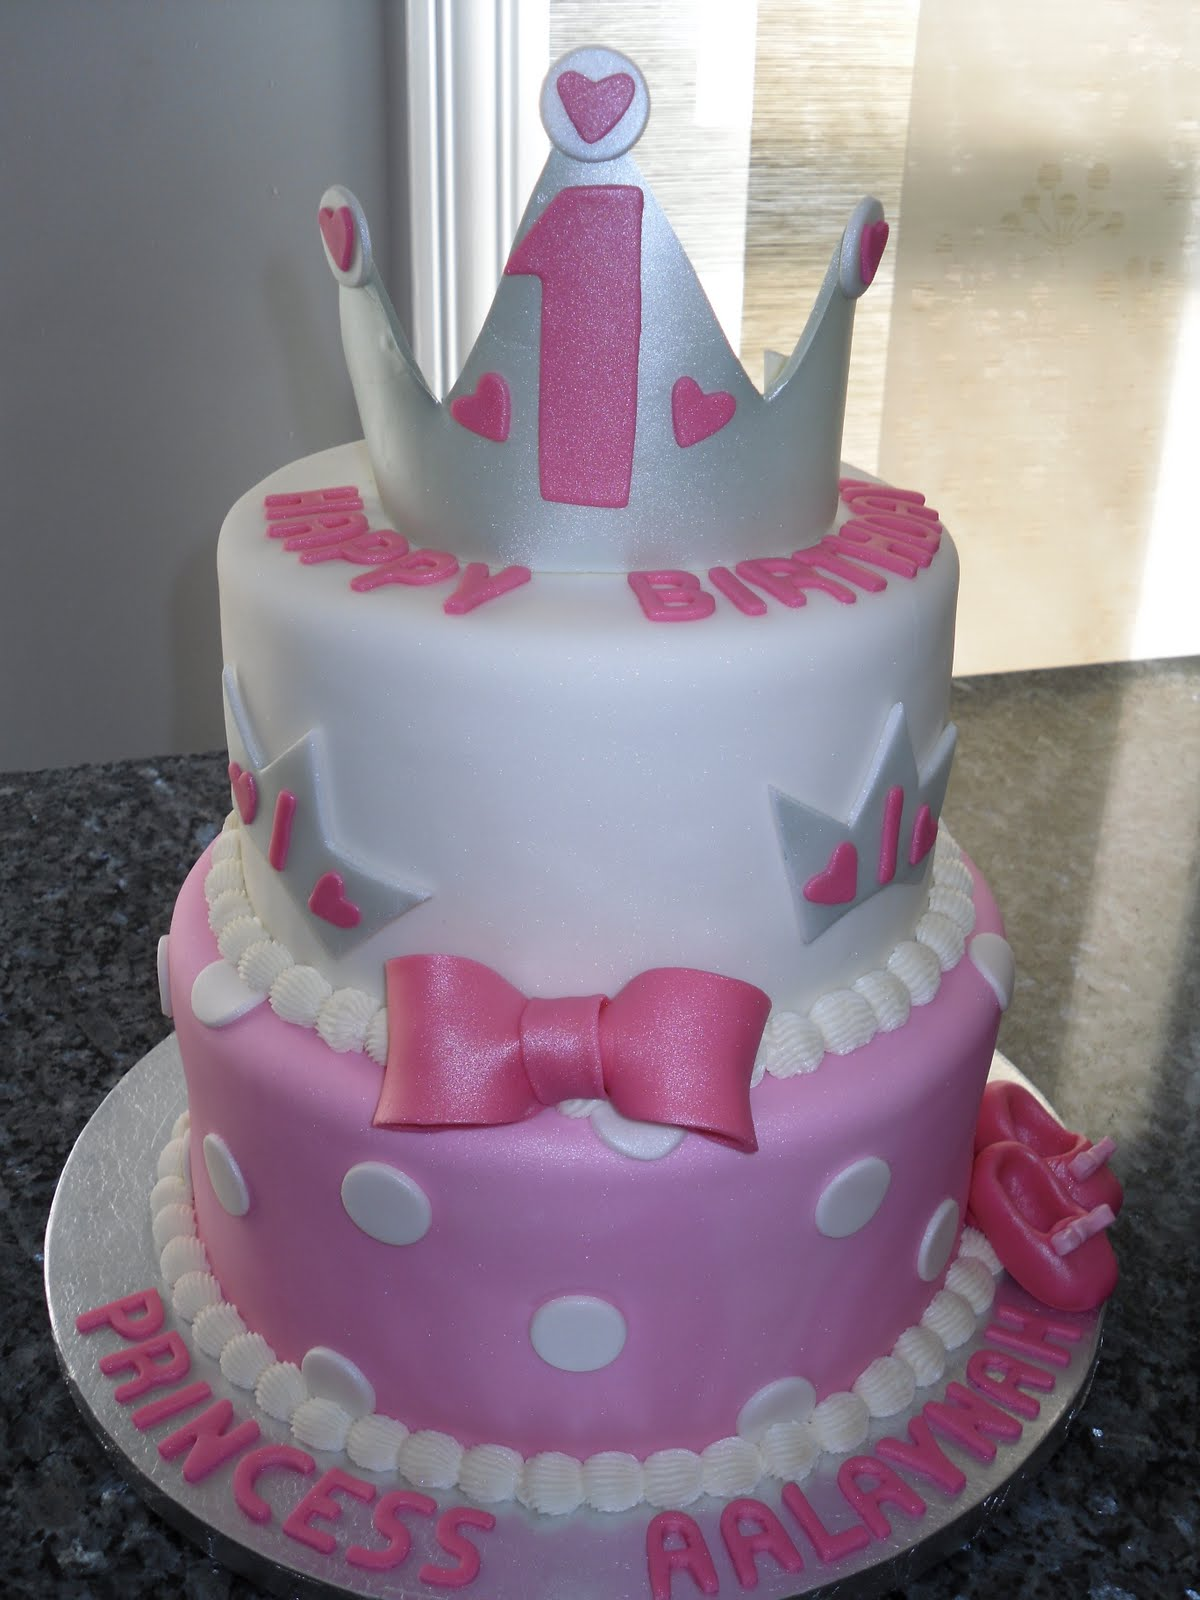 Carat Cakes: Two Very Special One Year Old Birthdays!